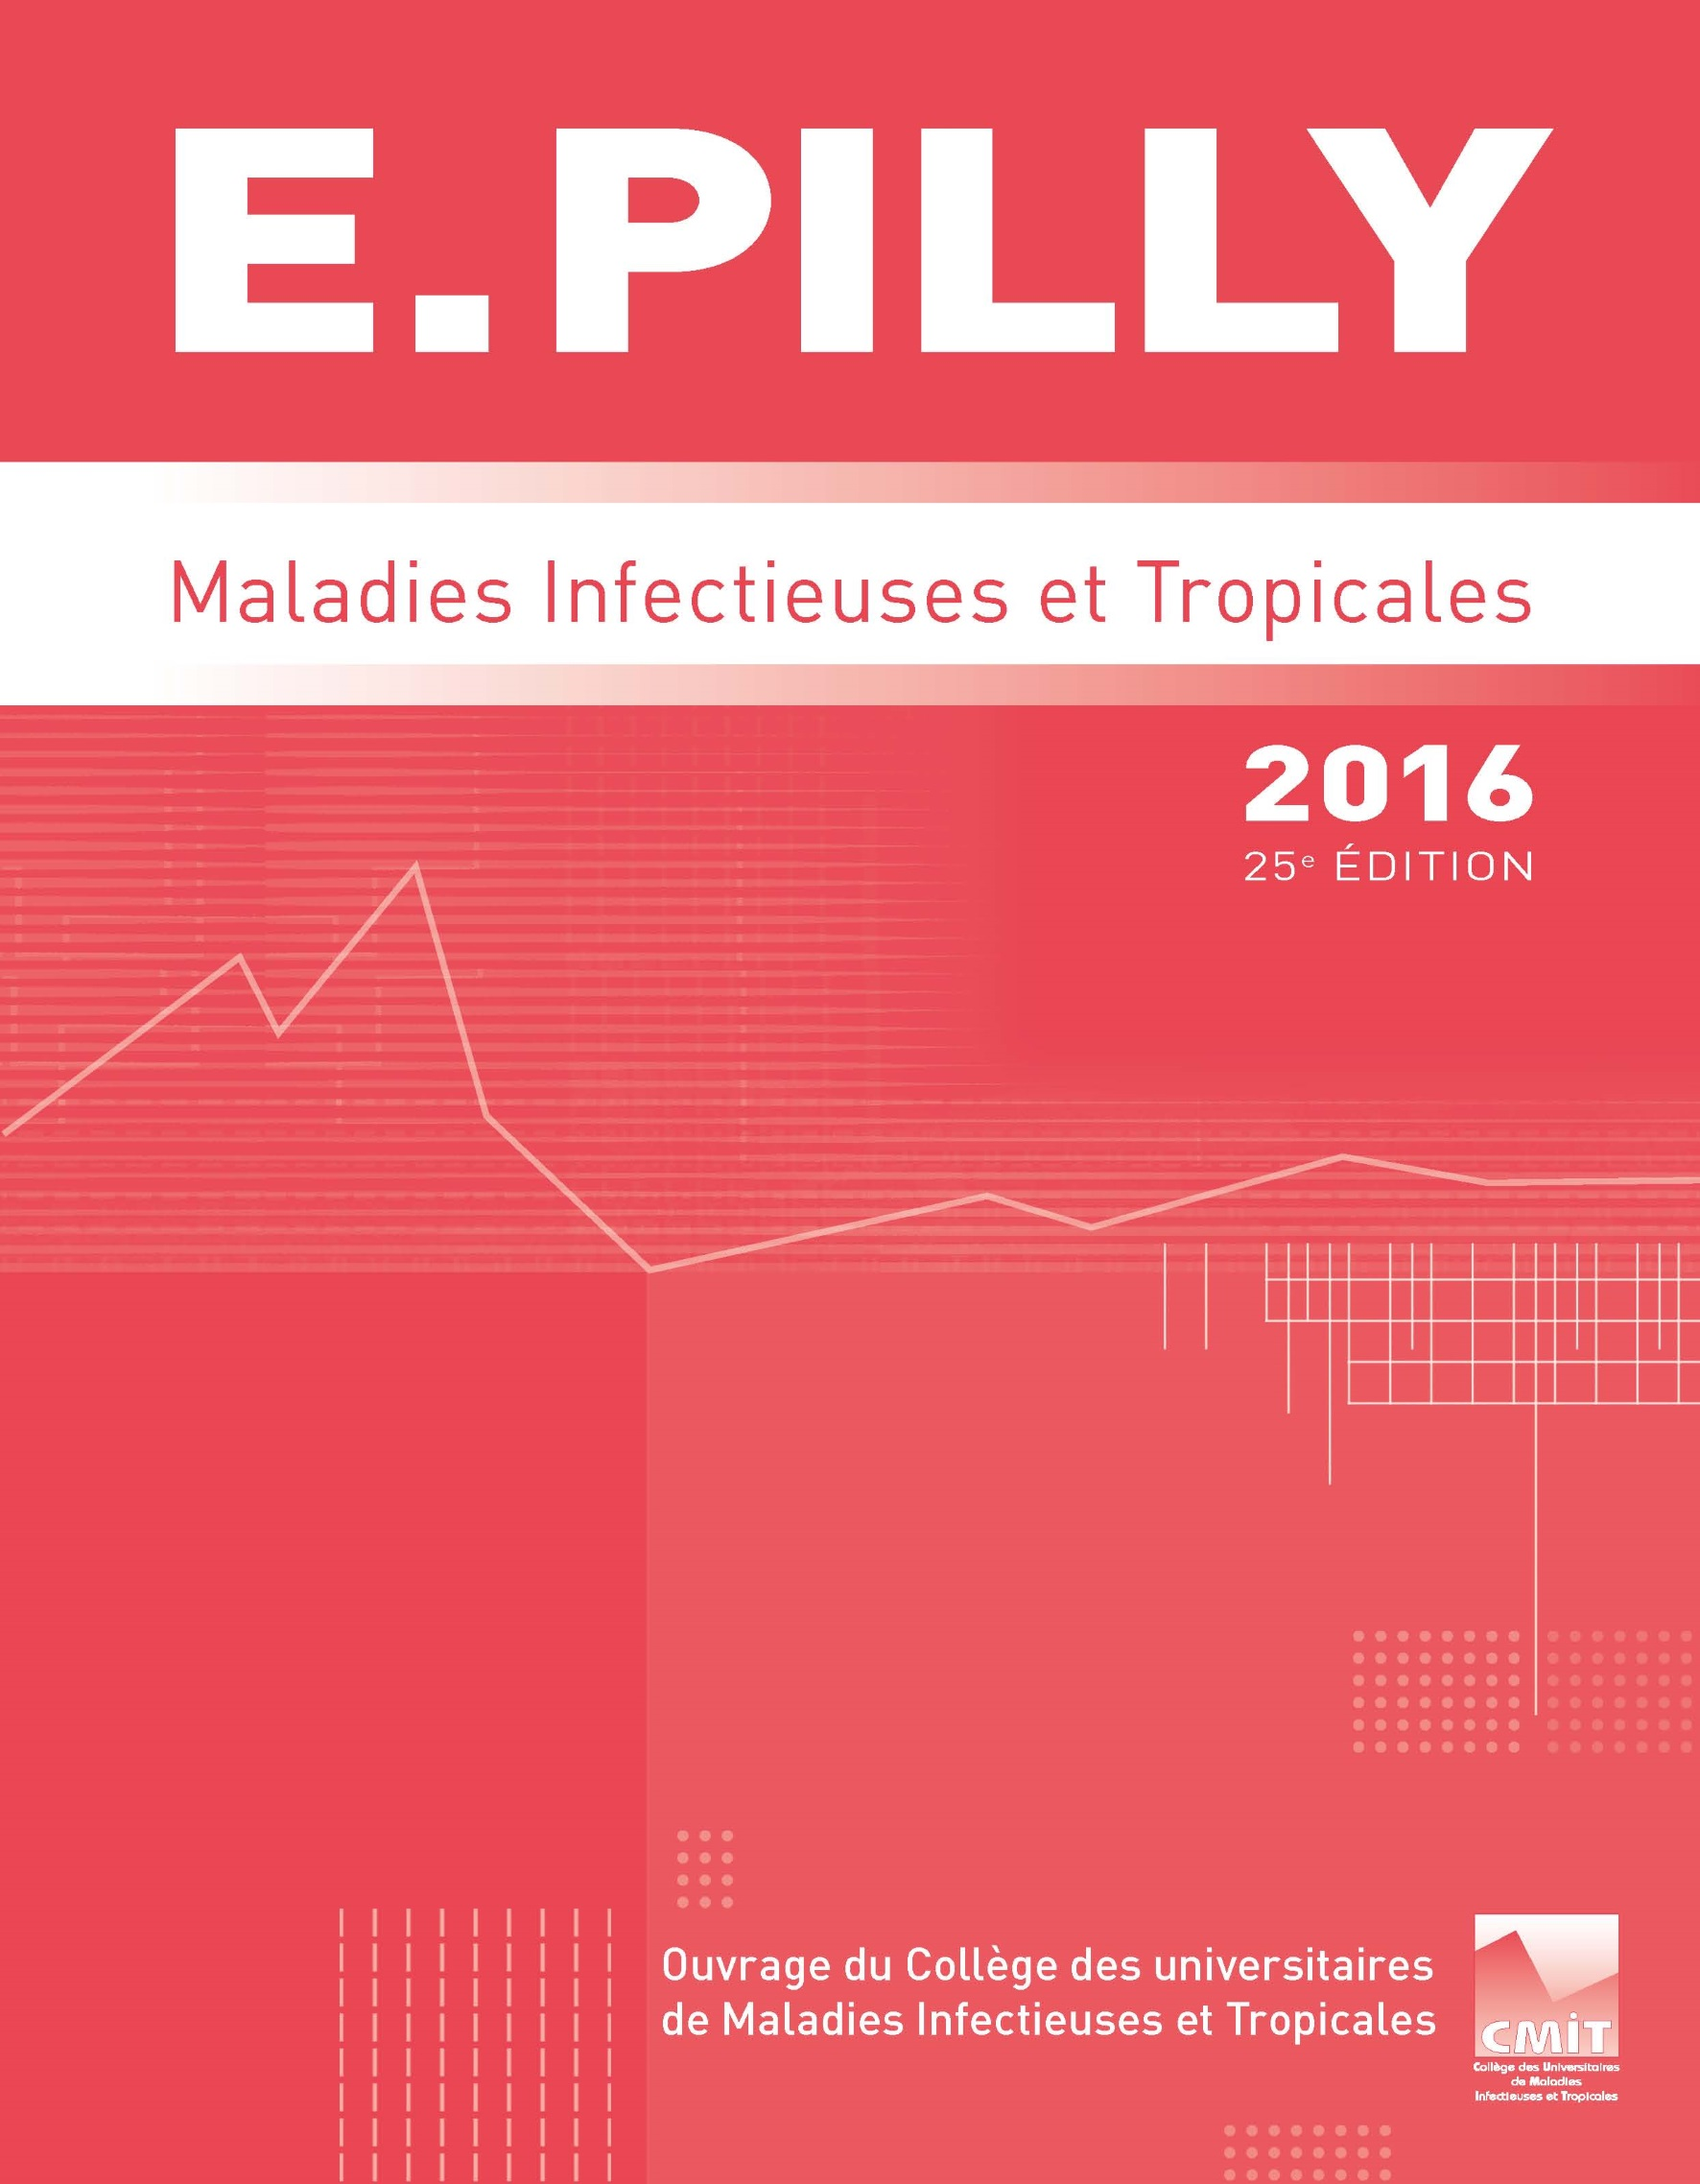 Pilly 2016, 25e éd.